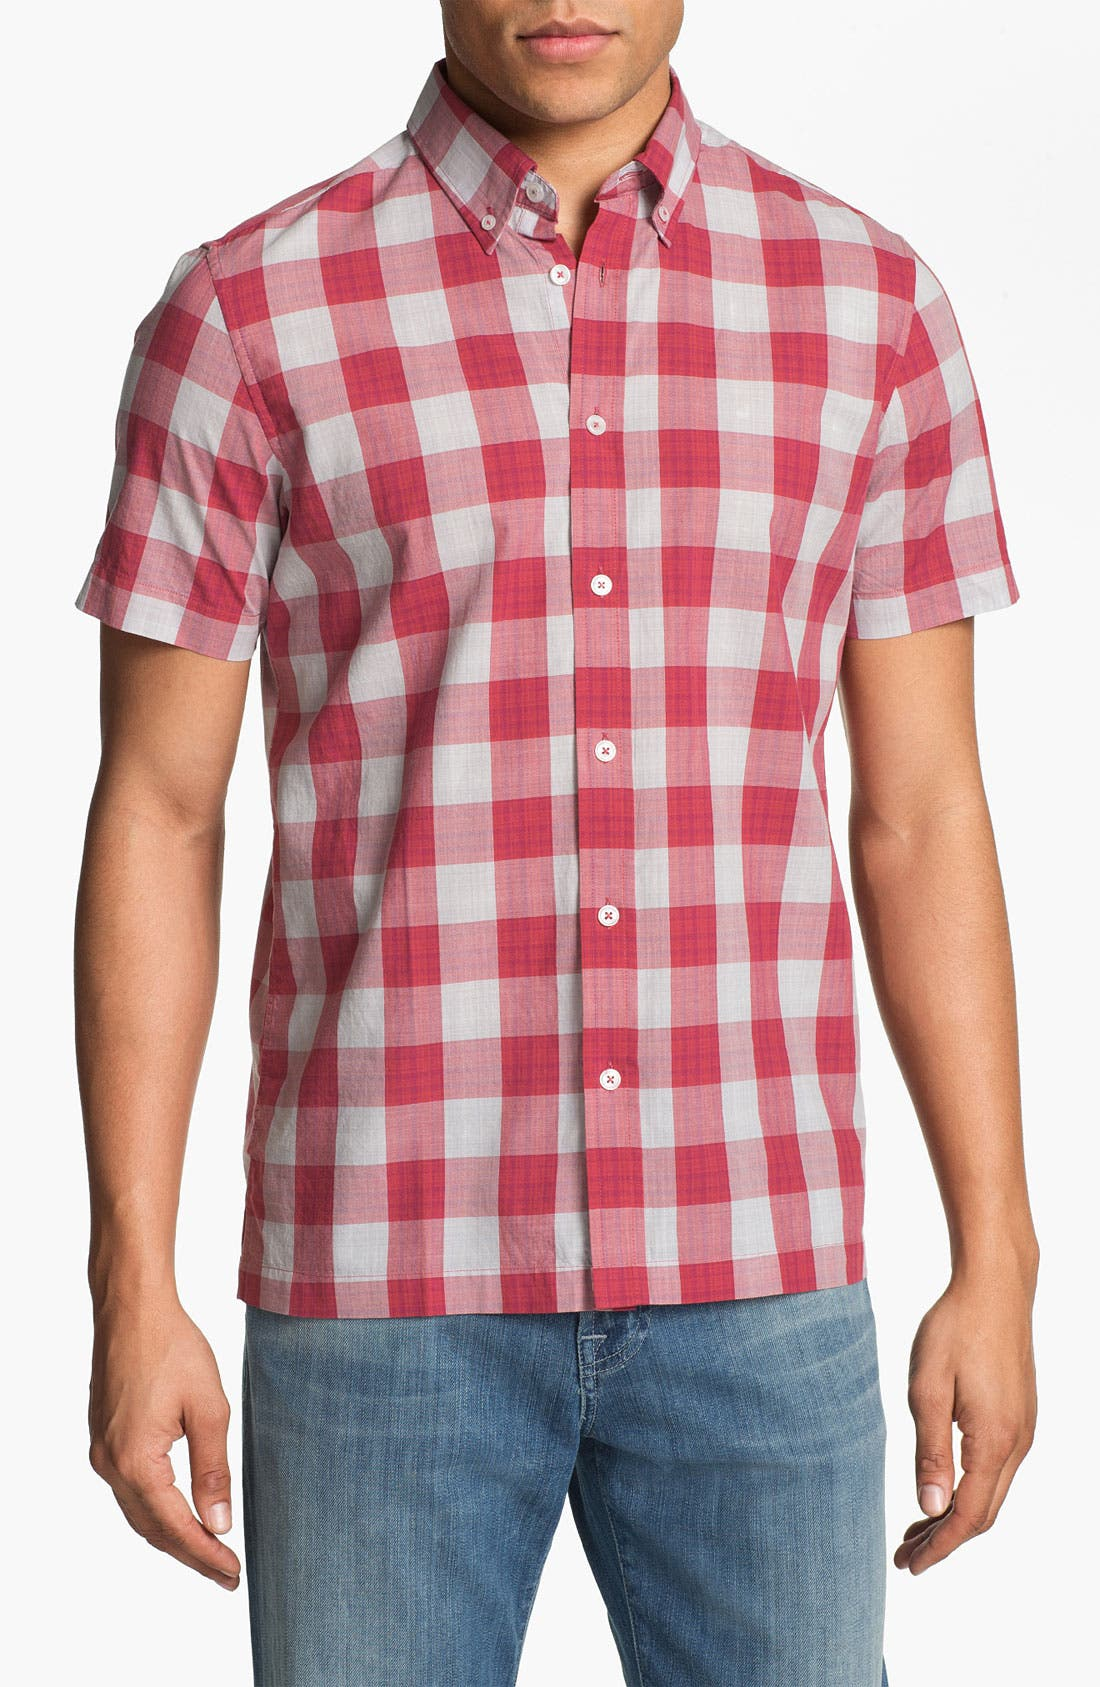 Main Image - Ben Sherman Gingham Check Short Sleeve Woven Shirt